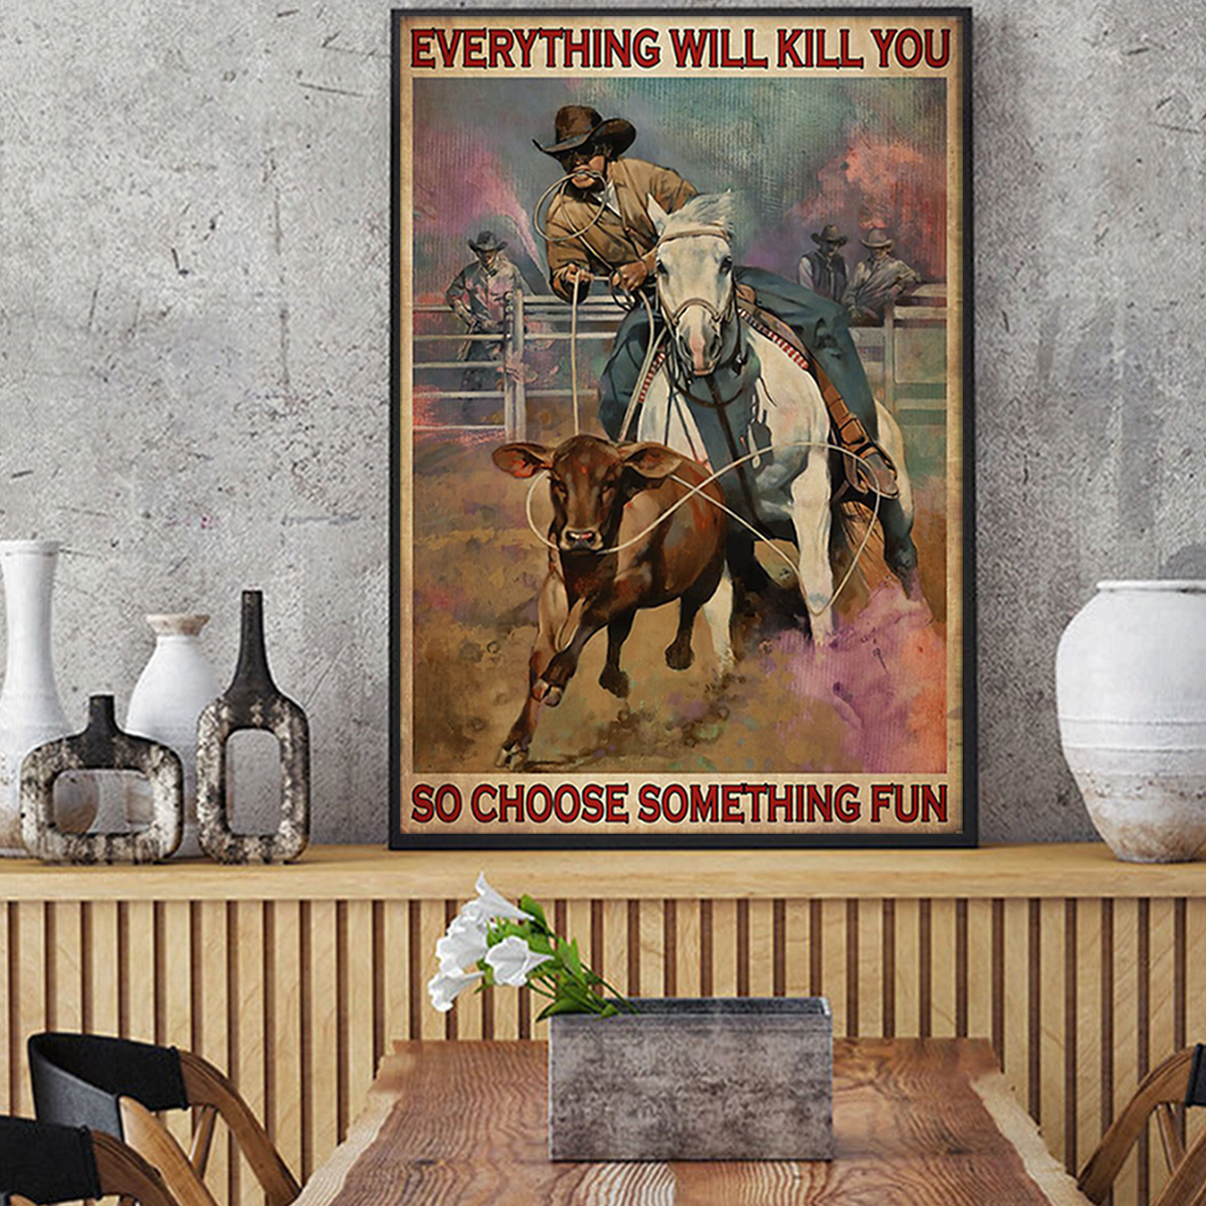 Rodeo boy everything will kill you so choose something fun poster A1